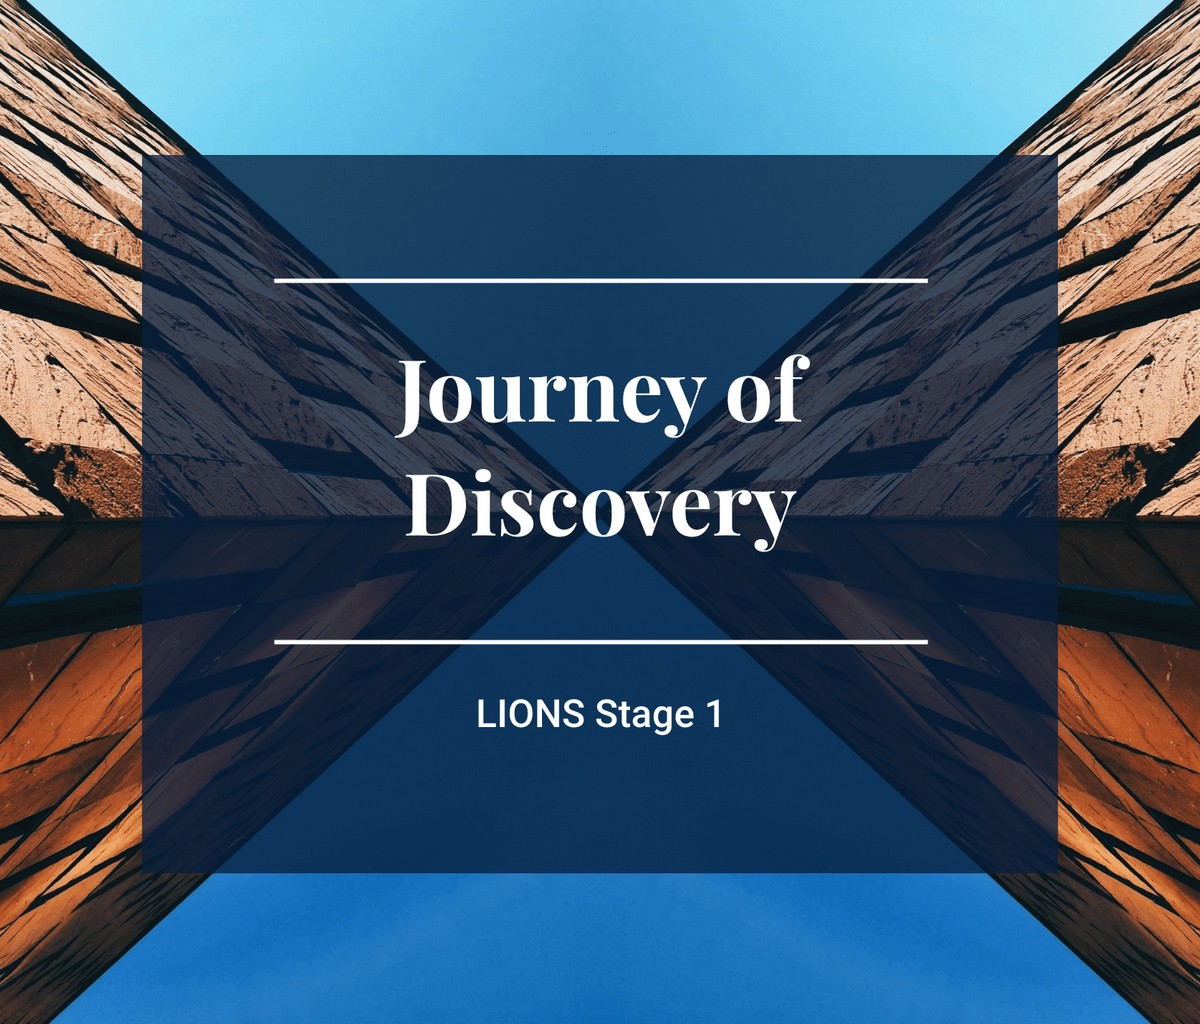 Lions Program Stage 1 Image